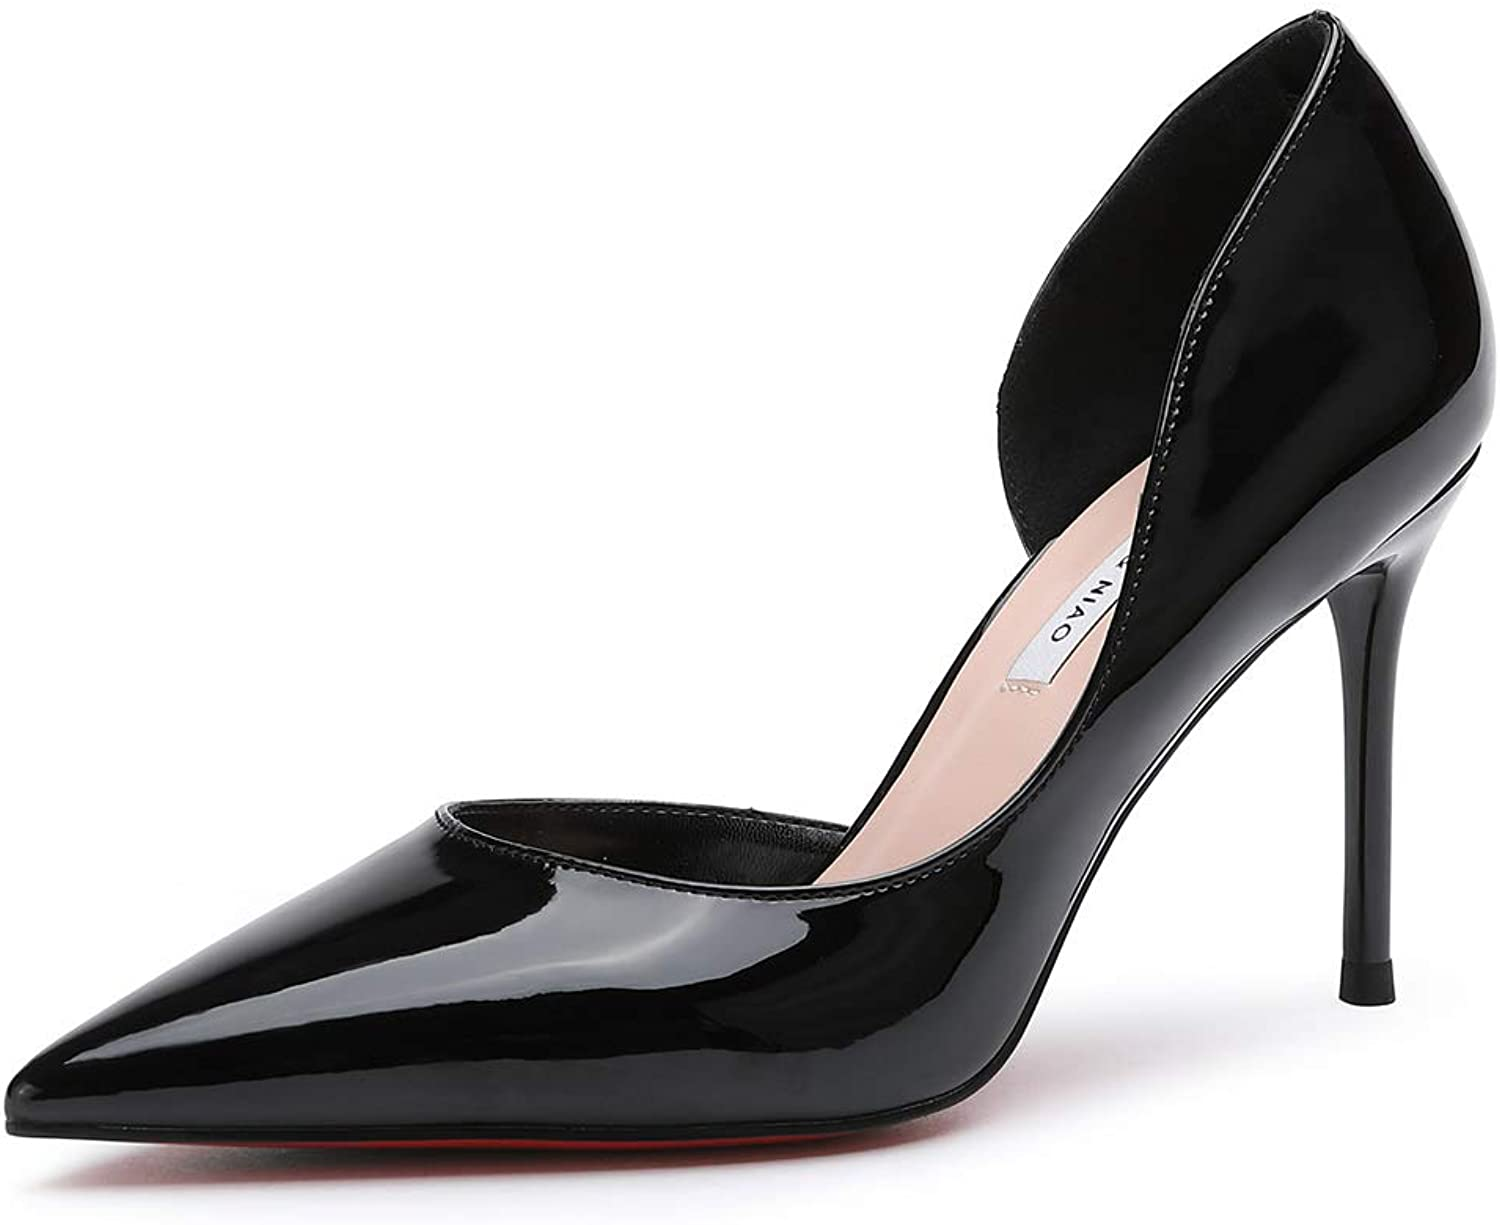 Soulength Ladies High Heels Patent Leather Stiletto Pointed Toe Pumps Sexy Joker for Women's shoes